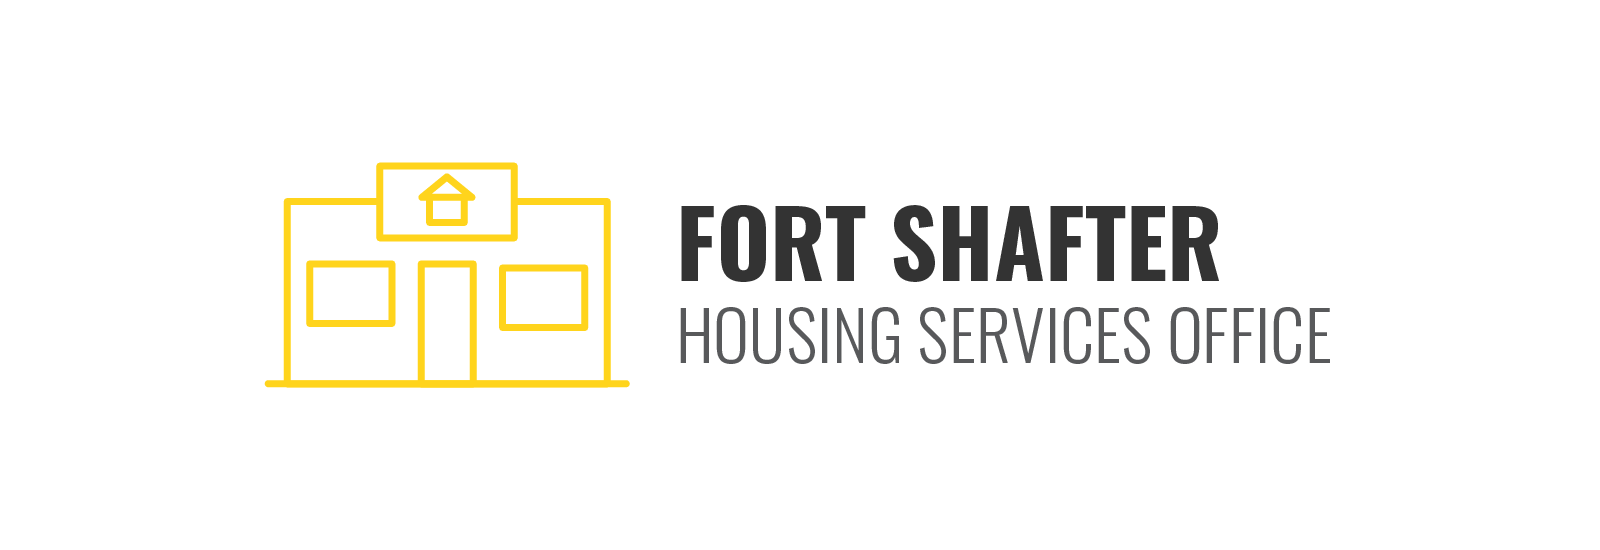 Fort Shafter Housing Services Office